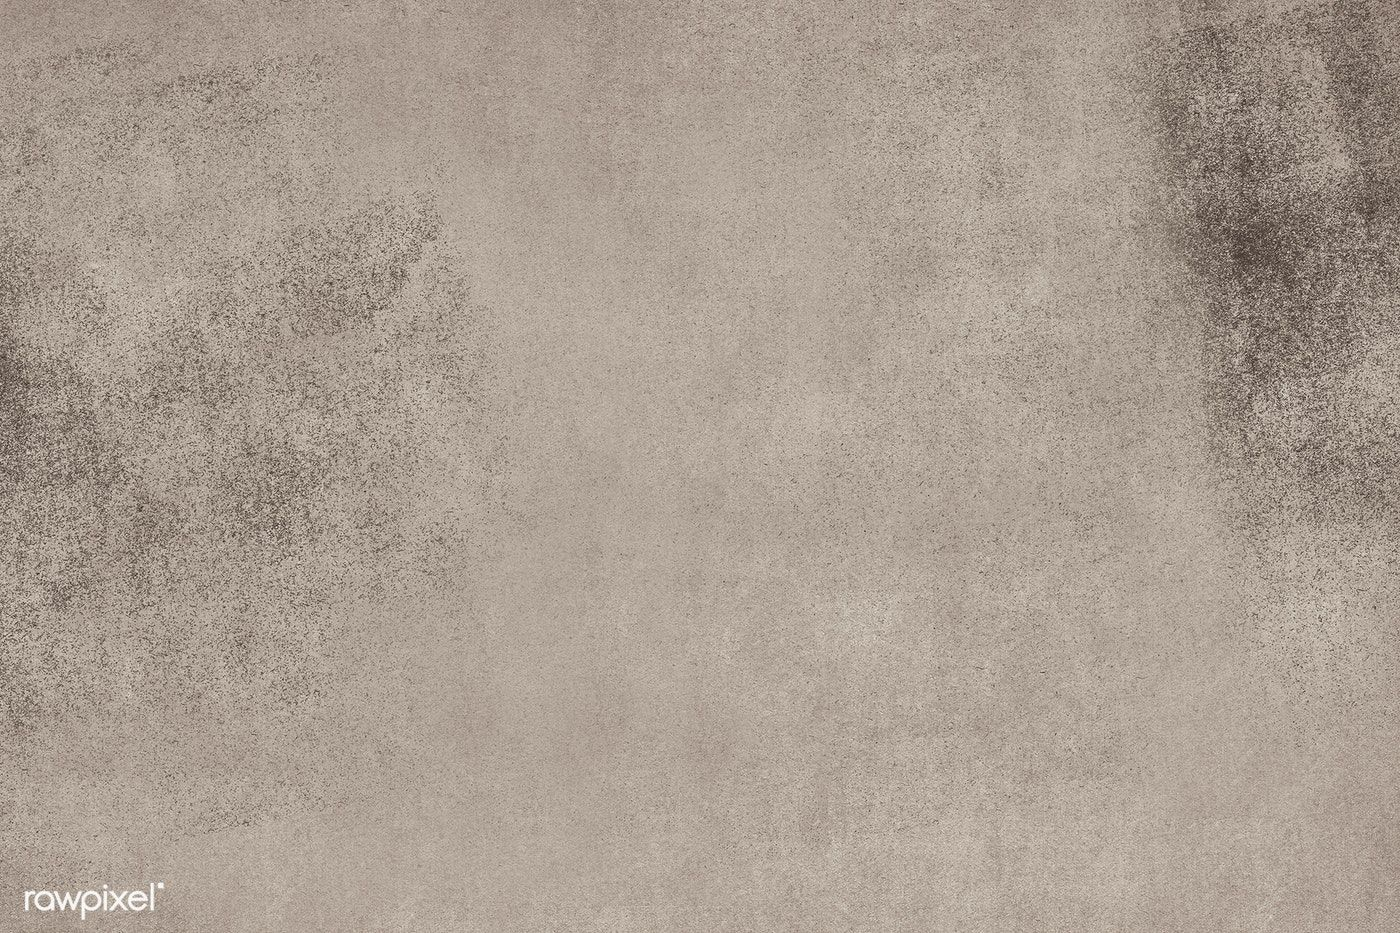 Solid Painted Concrete Wall Textured Backdrop Free Image By Rawpixel Com Concrete Wall Texture Concrete Texture Textured Background